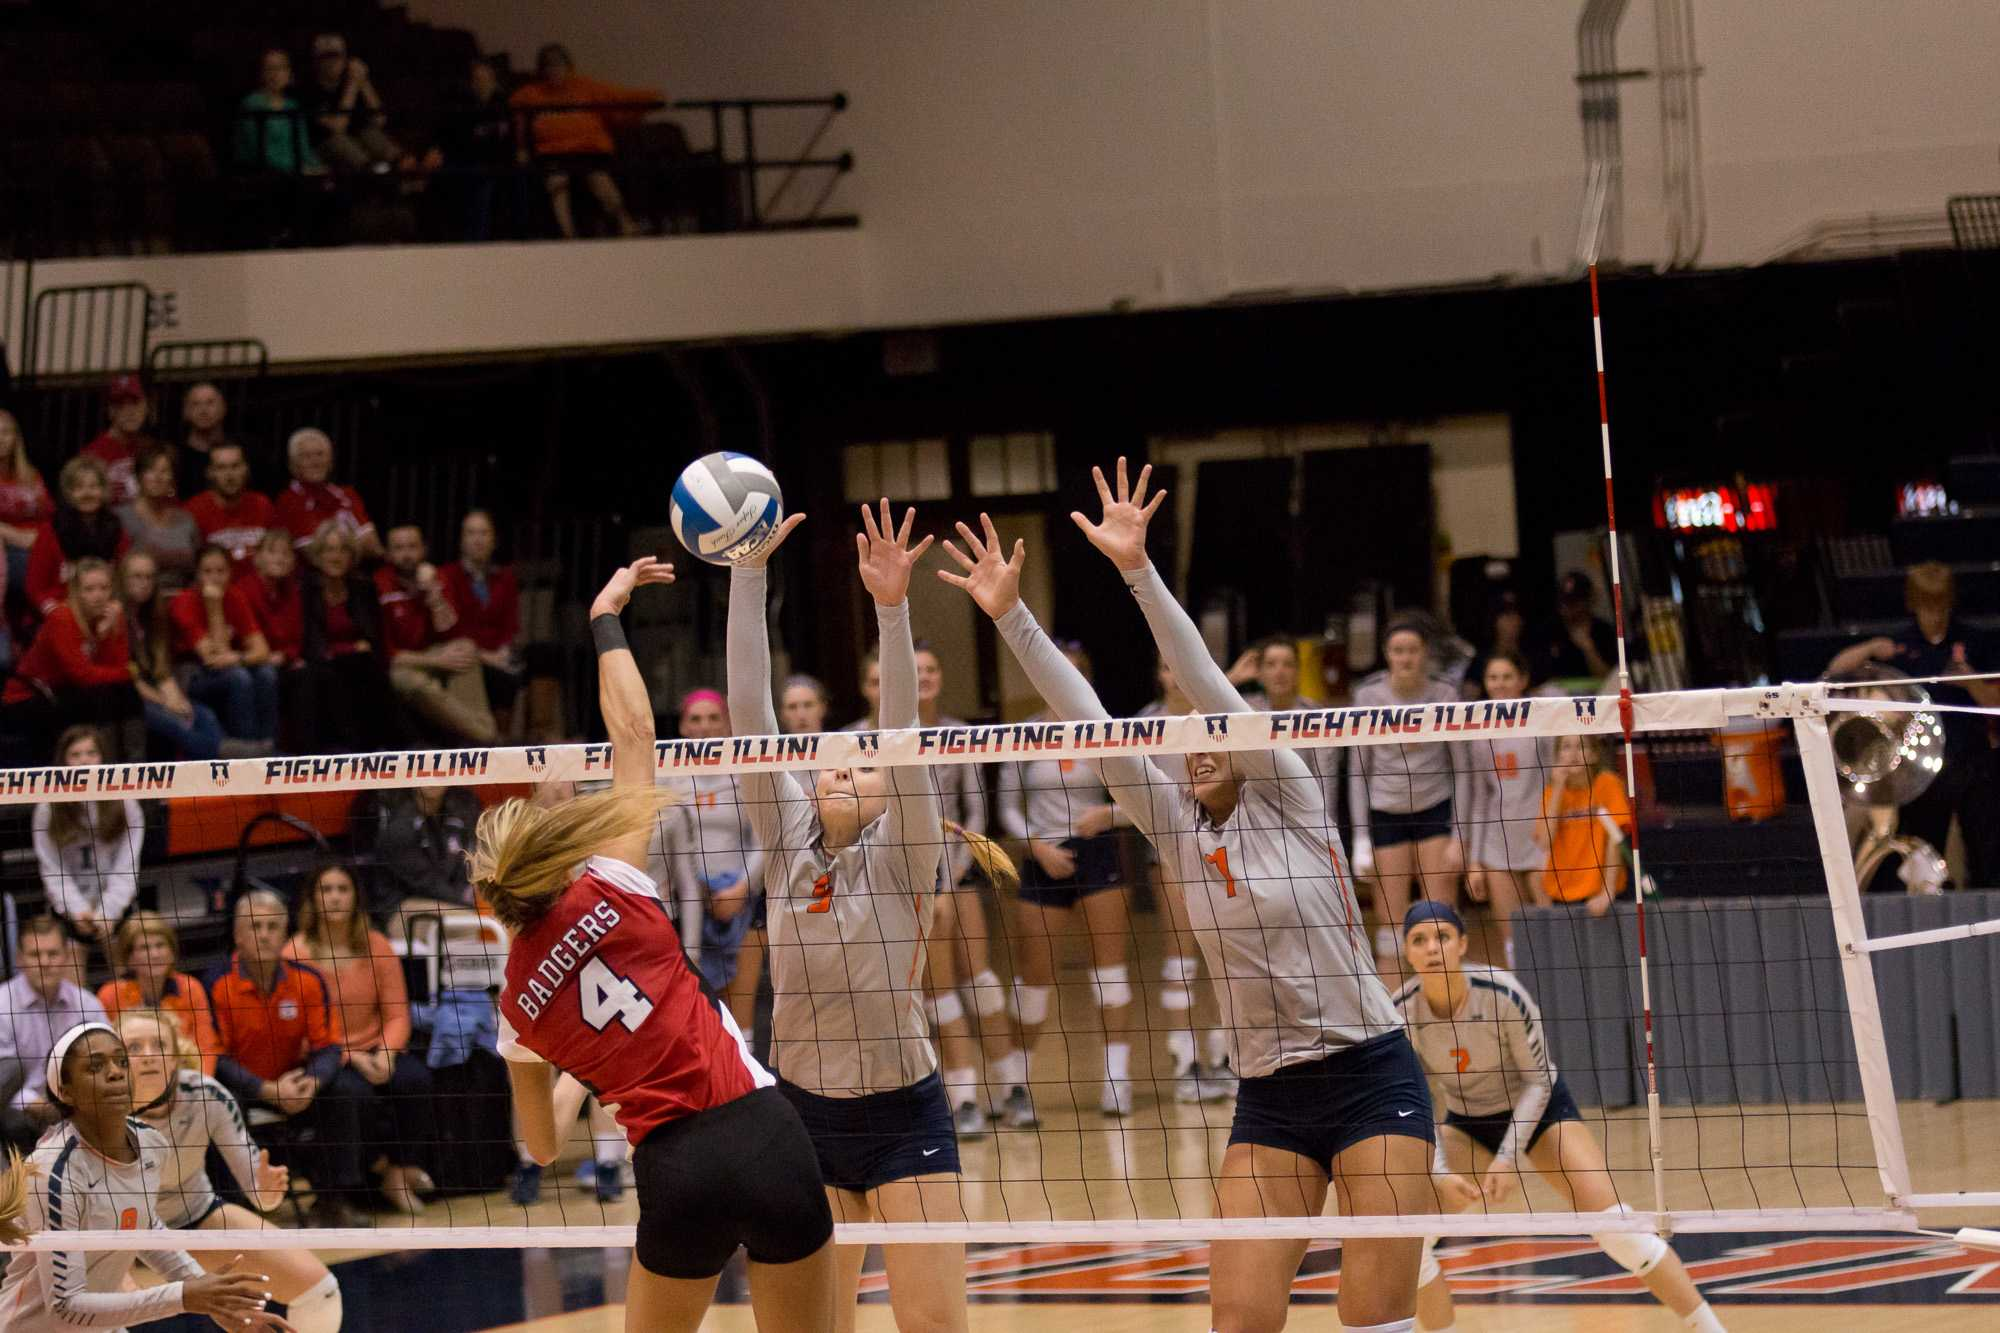 Illinois' Ali Bastianelli and Jocelynn Birks attempt to block a Wisconsin hit during the match against Wisconsin at Huff Hall on Wednesday, Nov. 18, 2015. Illinois lost 3-2.